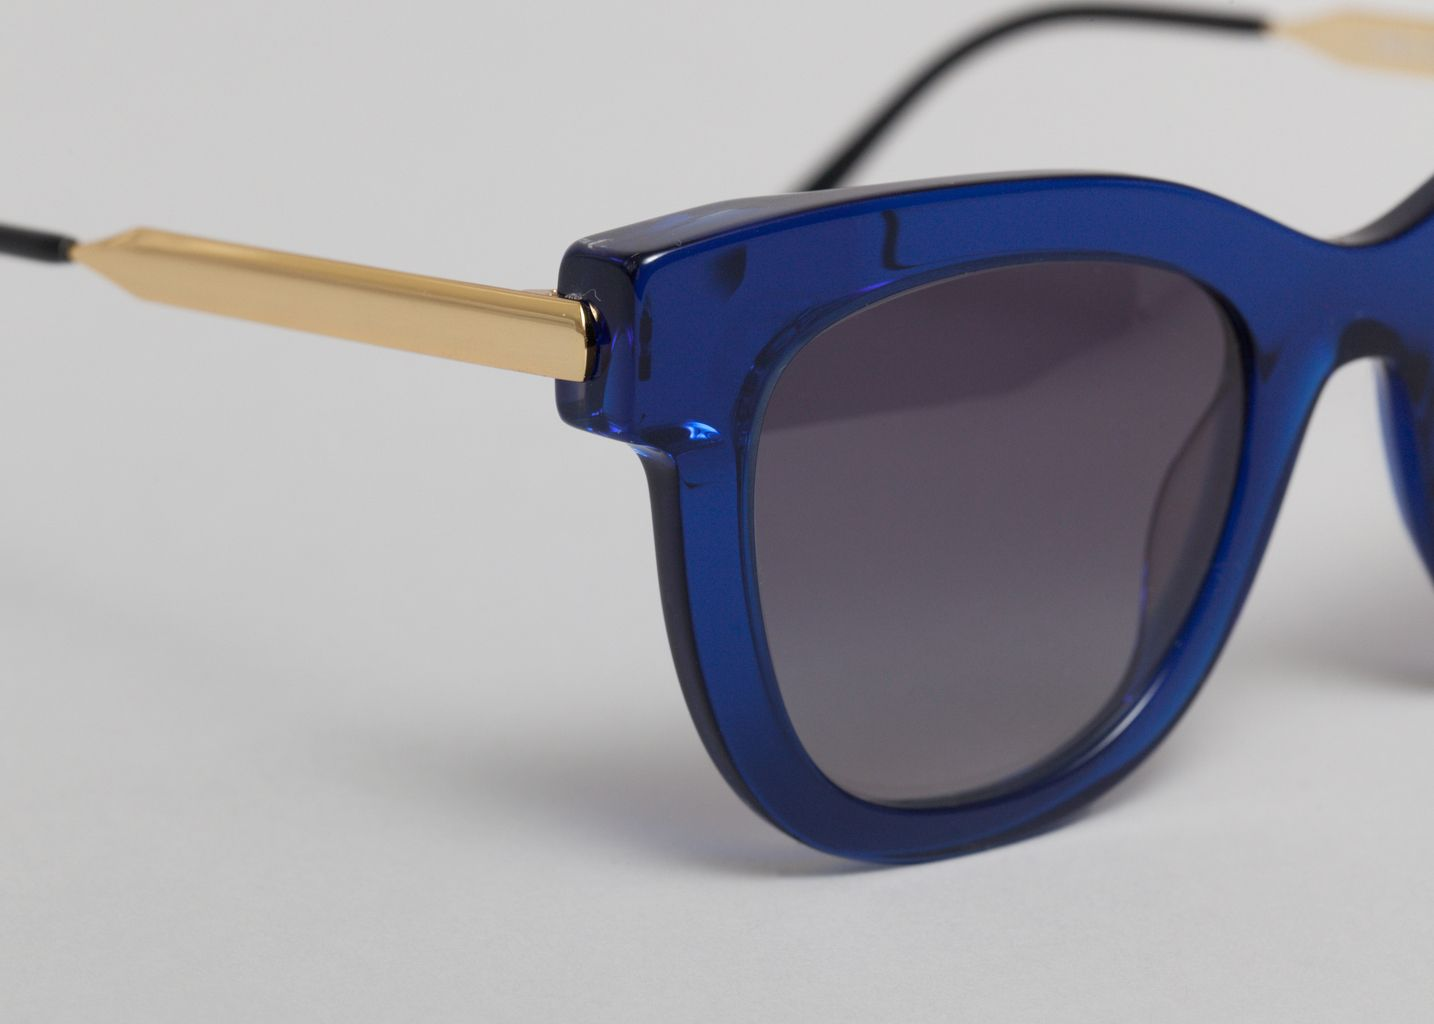 Lunettes Sexxxy - Thierry Lasry